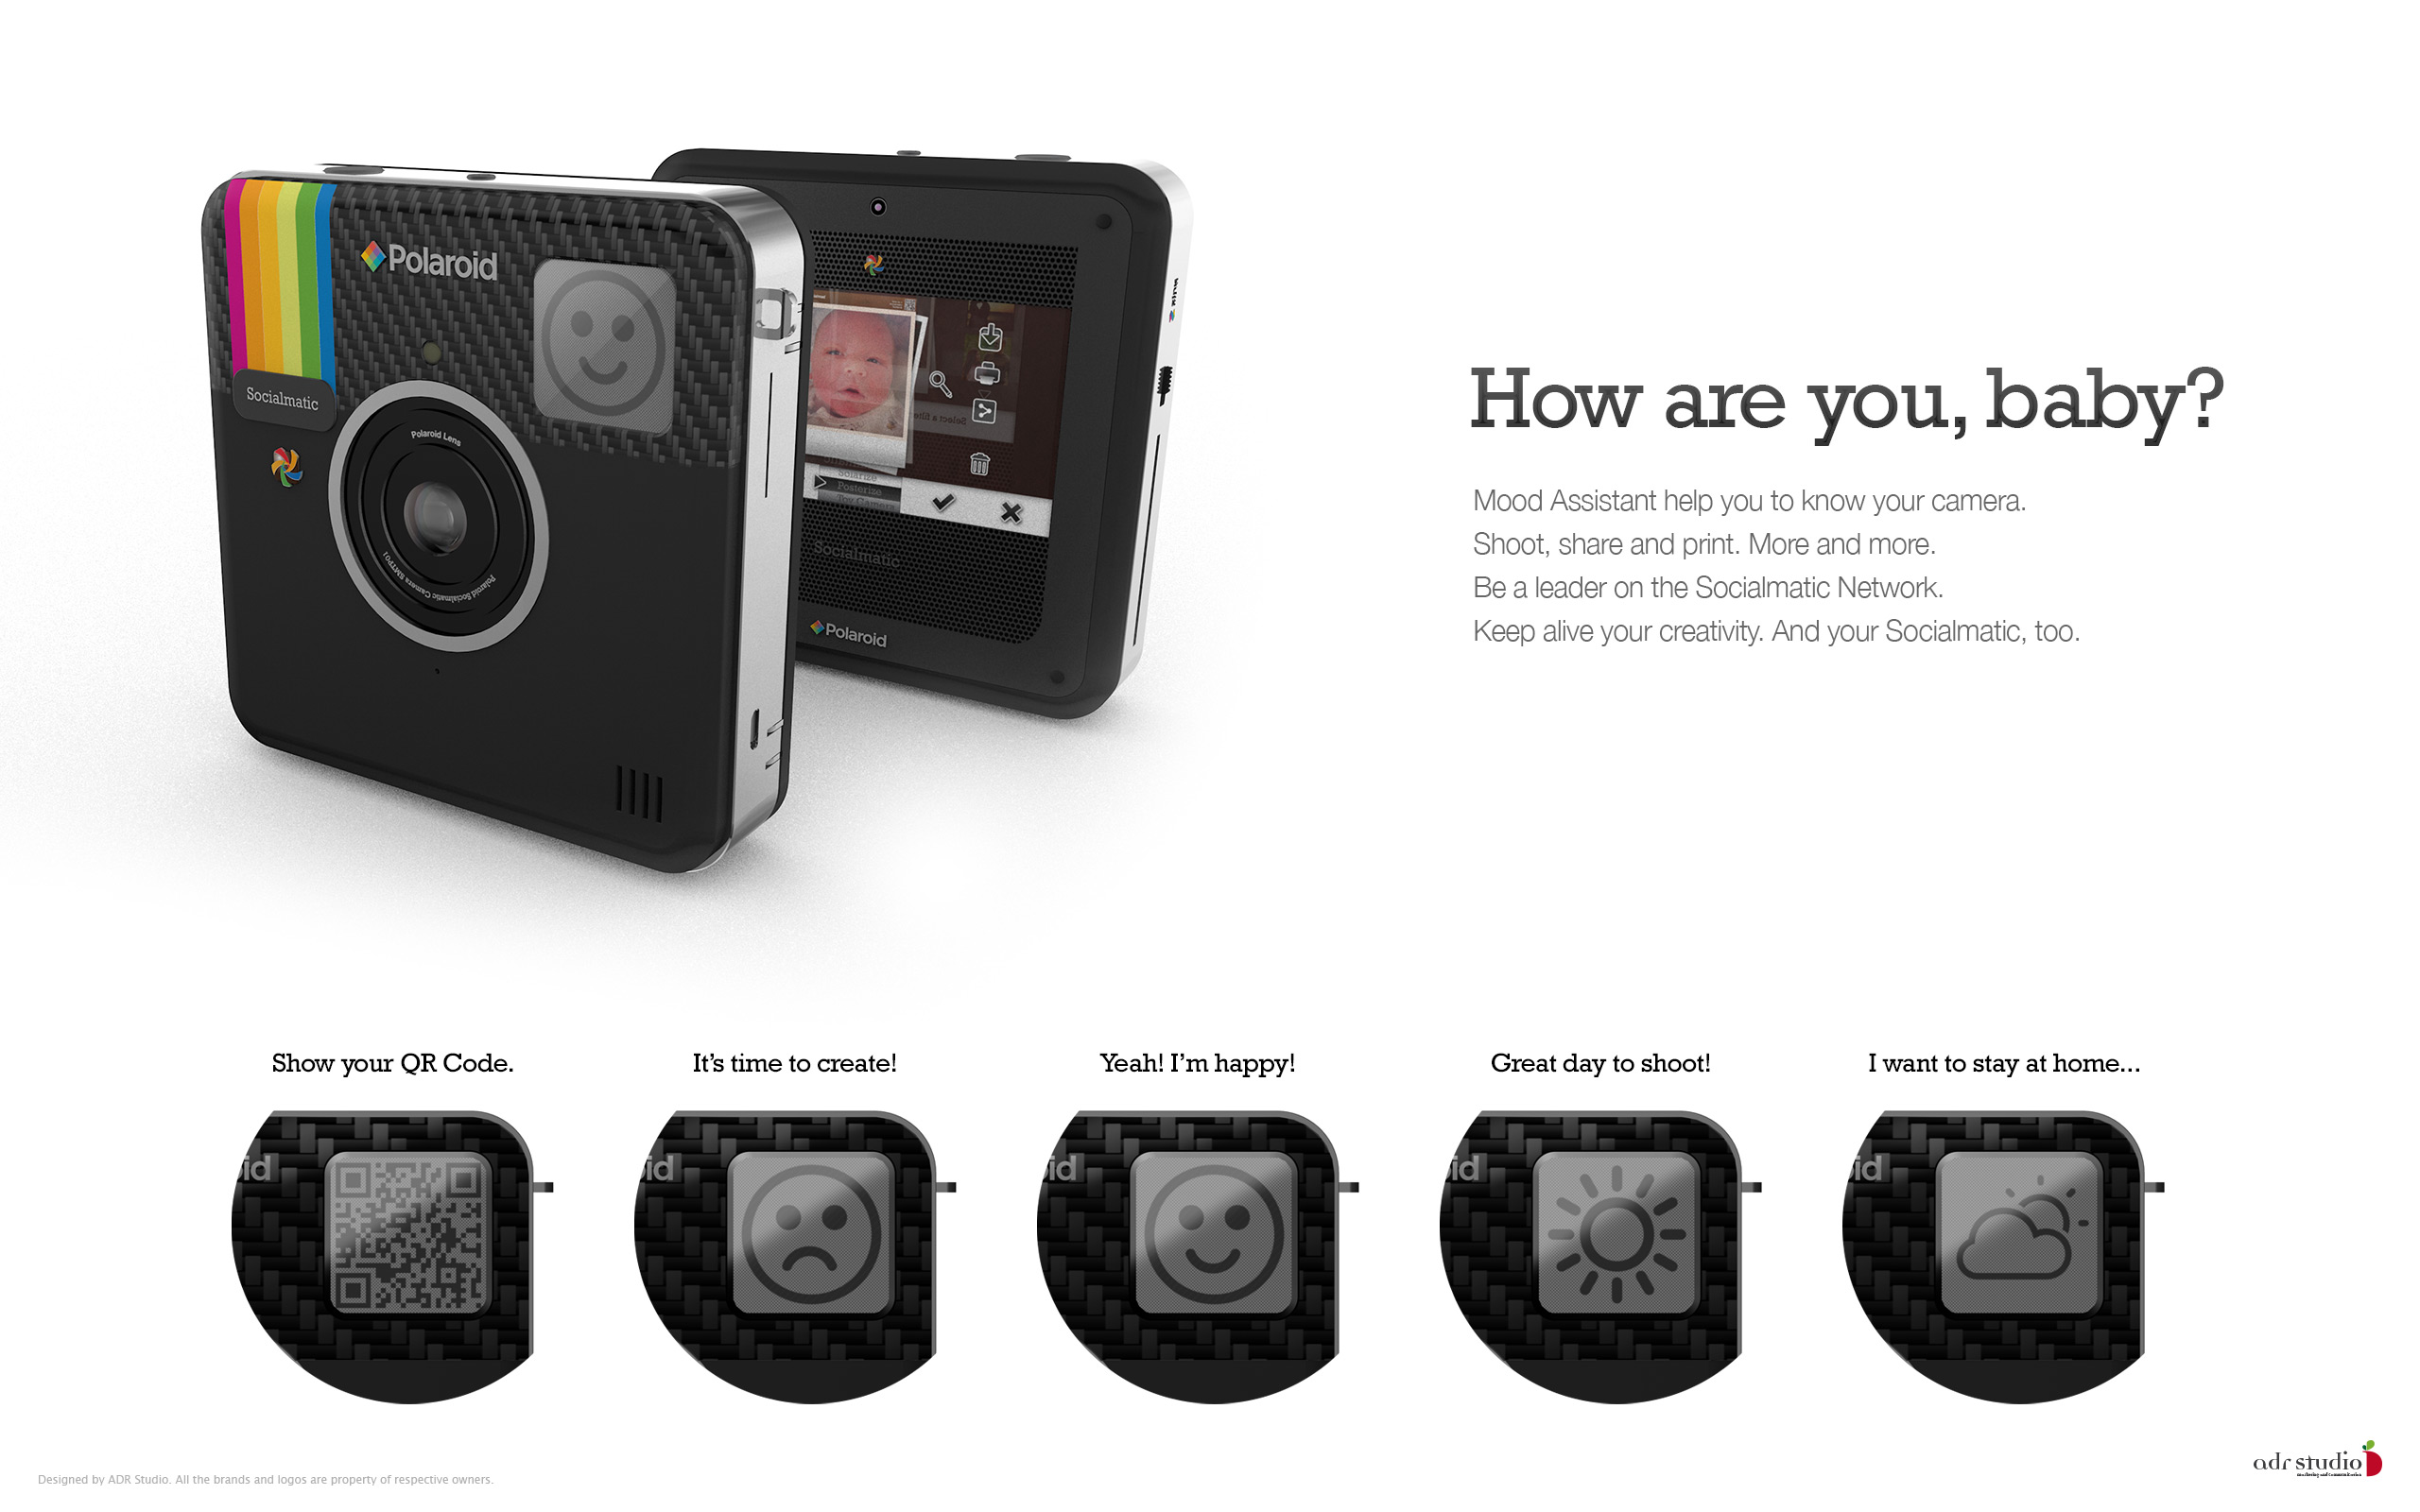 NEW UPDATE Pics Of The Polaroid Socialmatic Cam Whats Not To Like